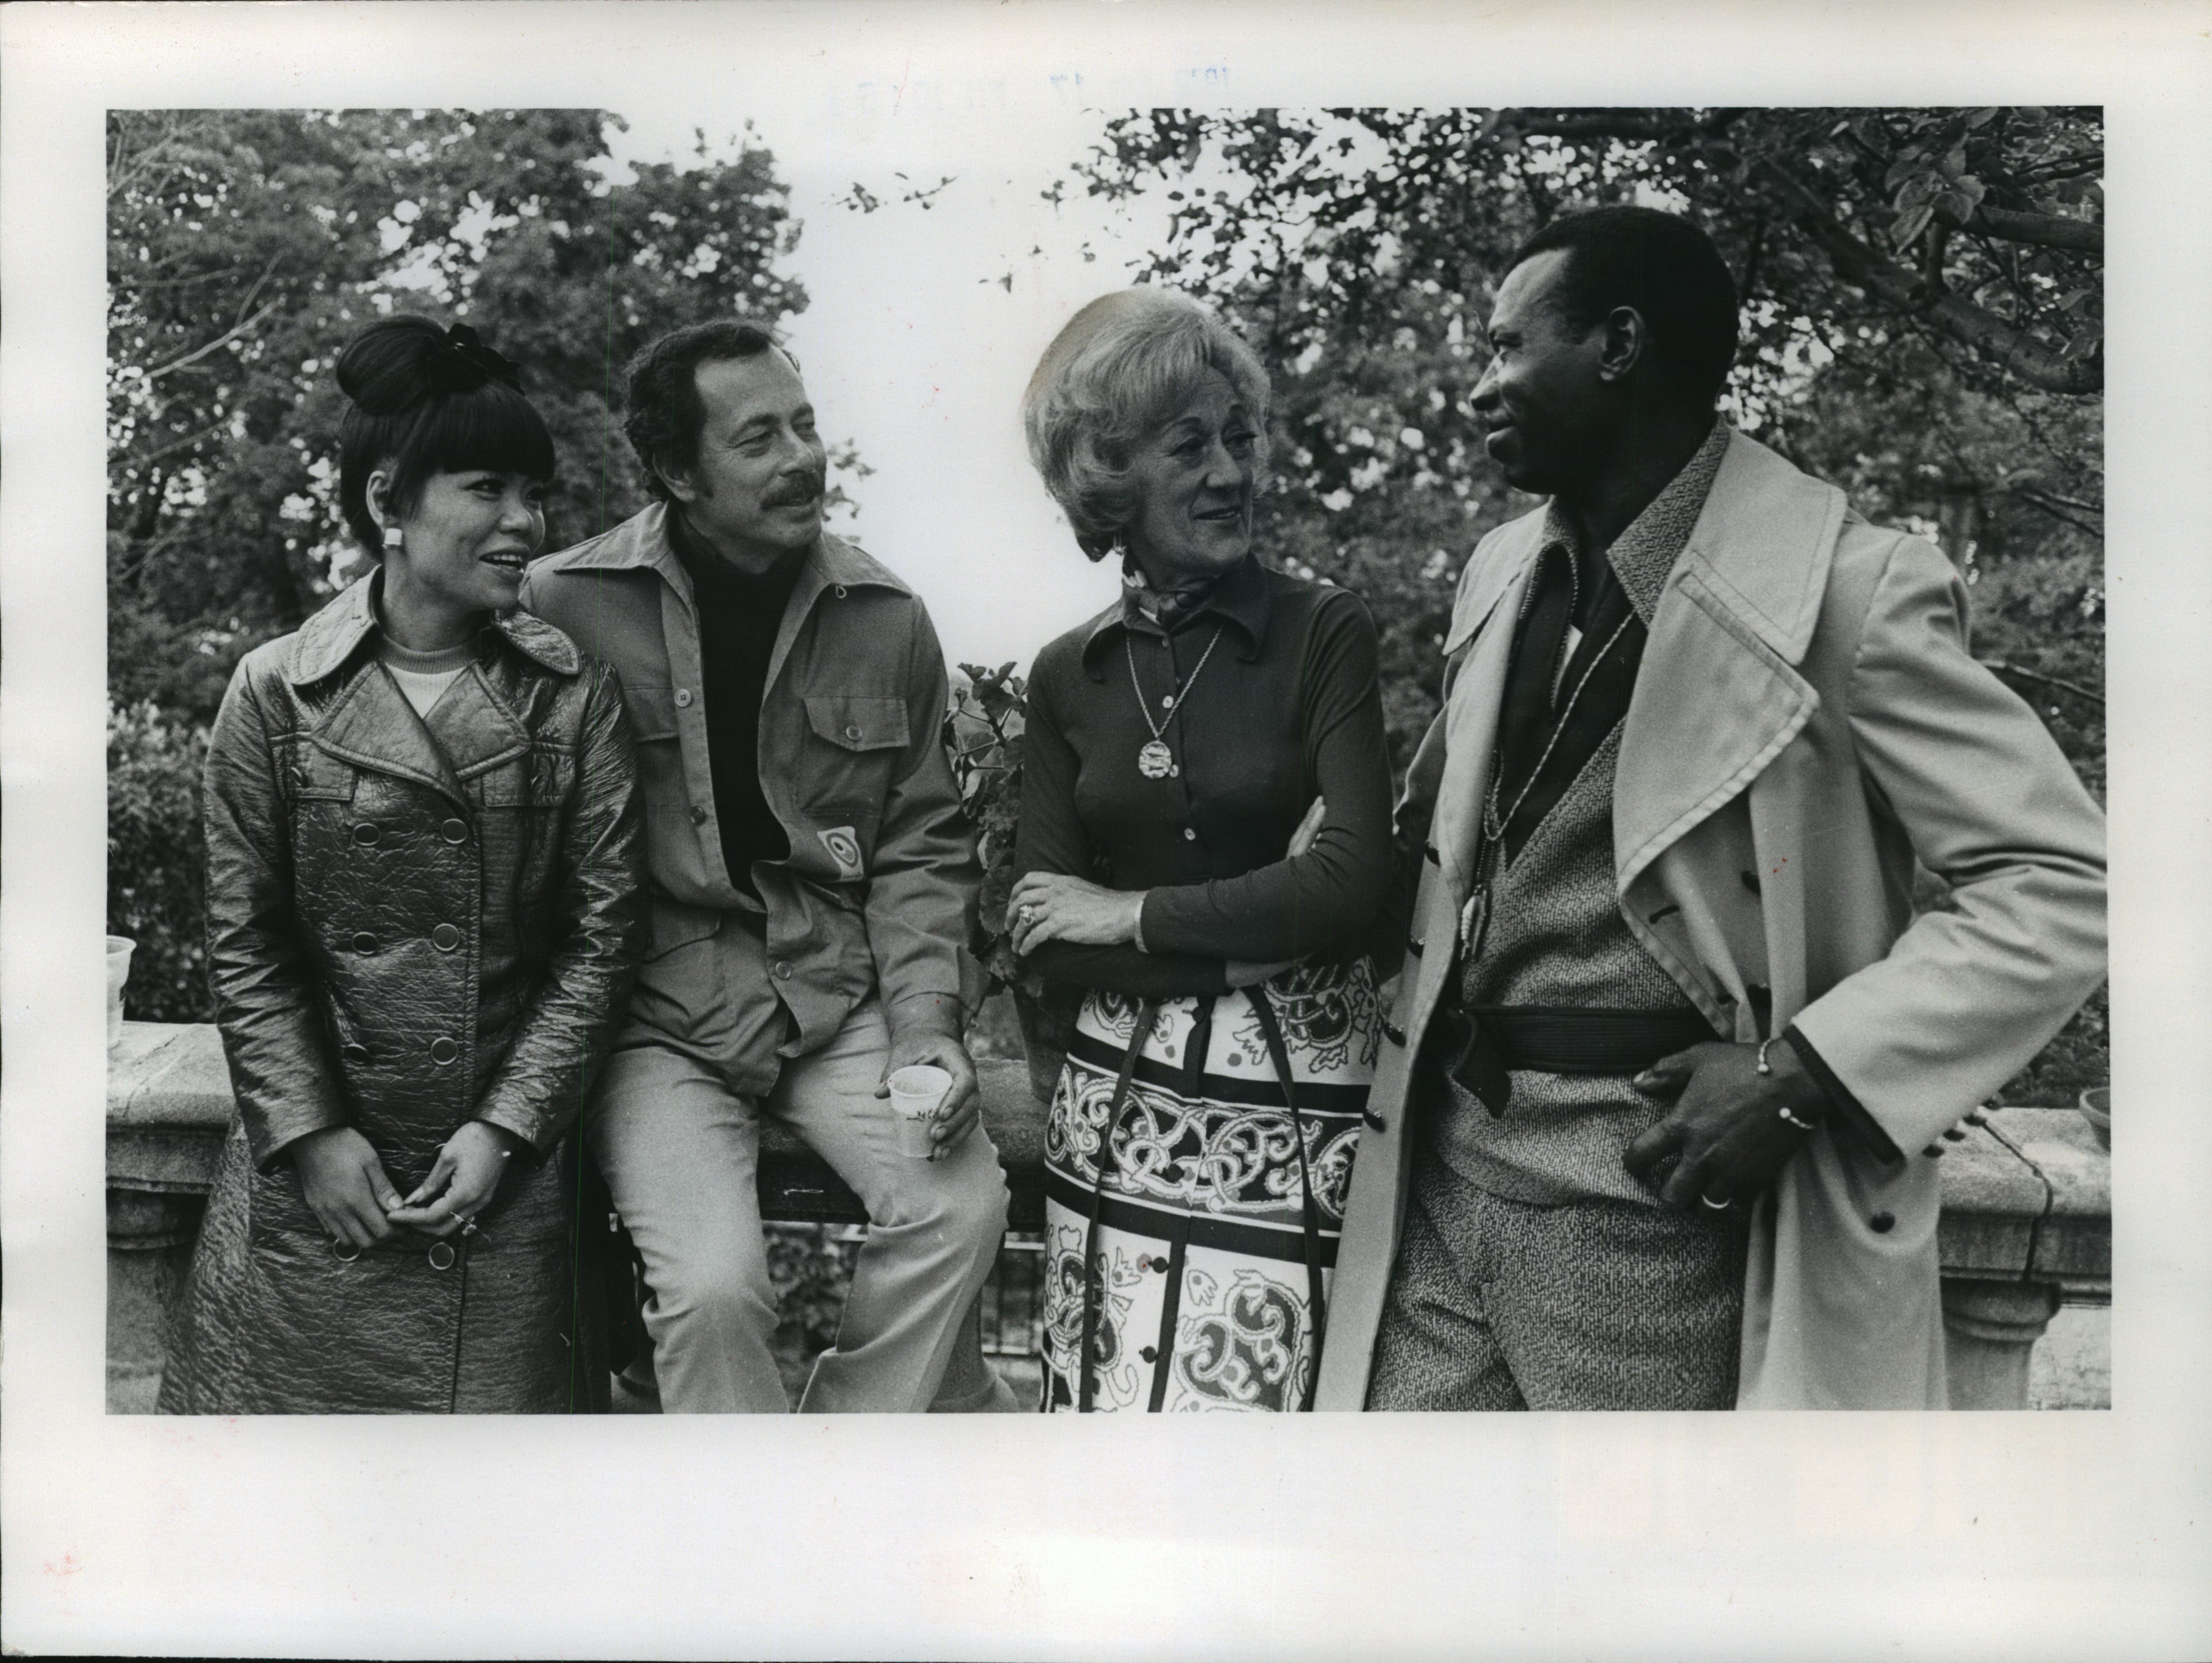 1972: At Villa Terrace, Warrington Colescott (second from left) relaxes with Keiko Jones (left), pianist Marian McPartland and drummer Elvin Jones. Elvin Jones and McPartland were in Milwaukee to perform with their jazz ensembles.